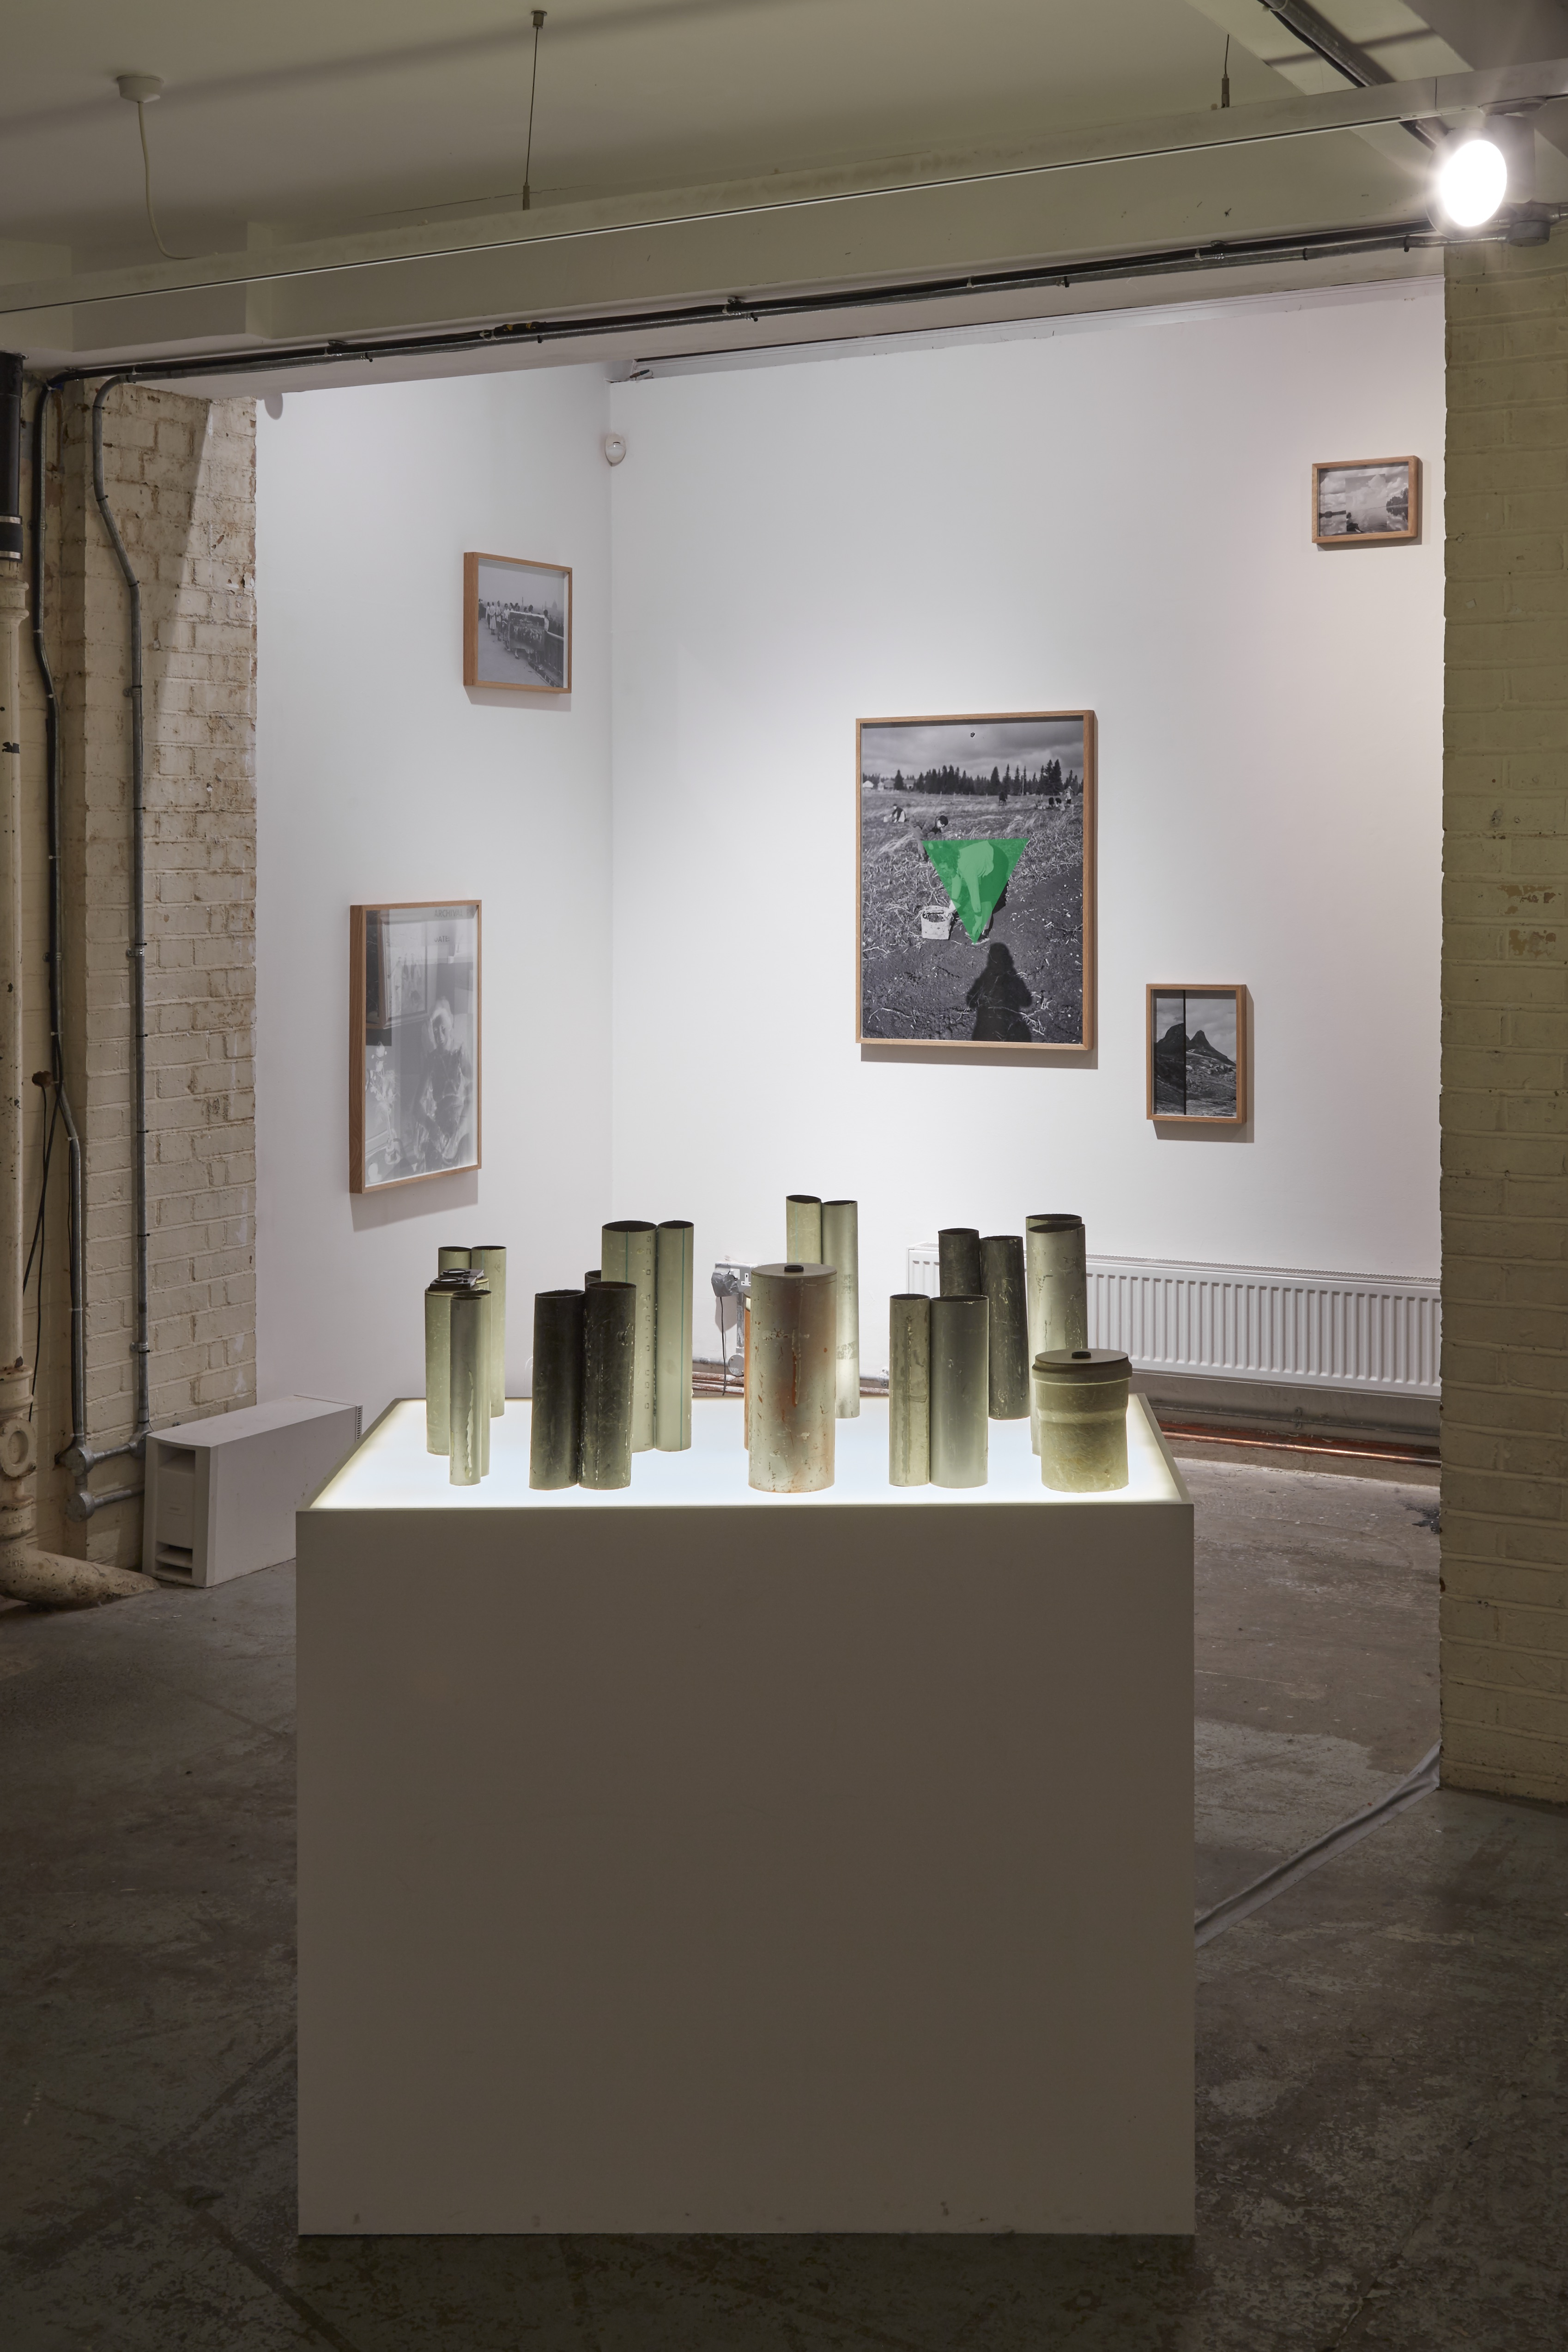 REVIEW: Secret Agent: Between Invisibility and Hypervisibility, curated by Hemera